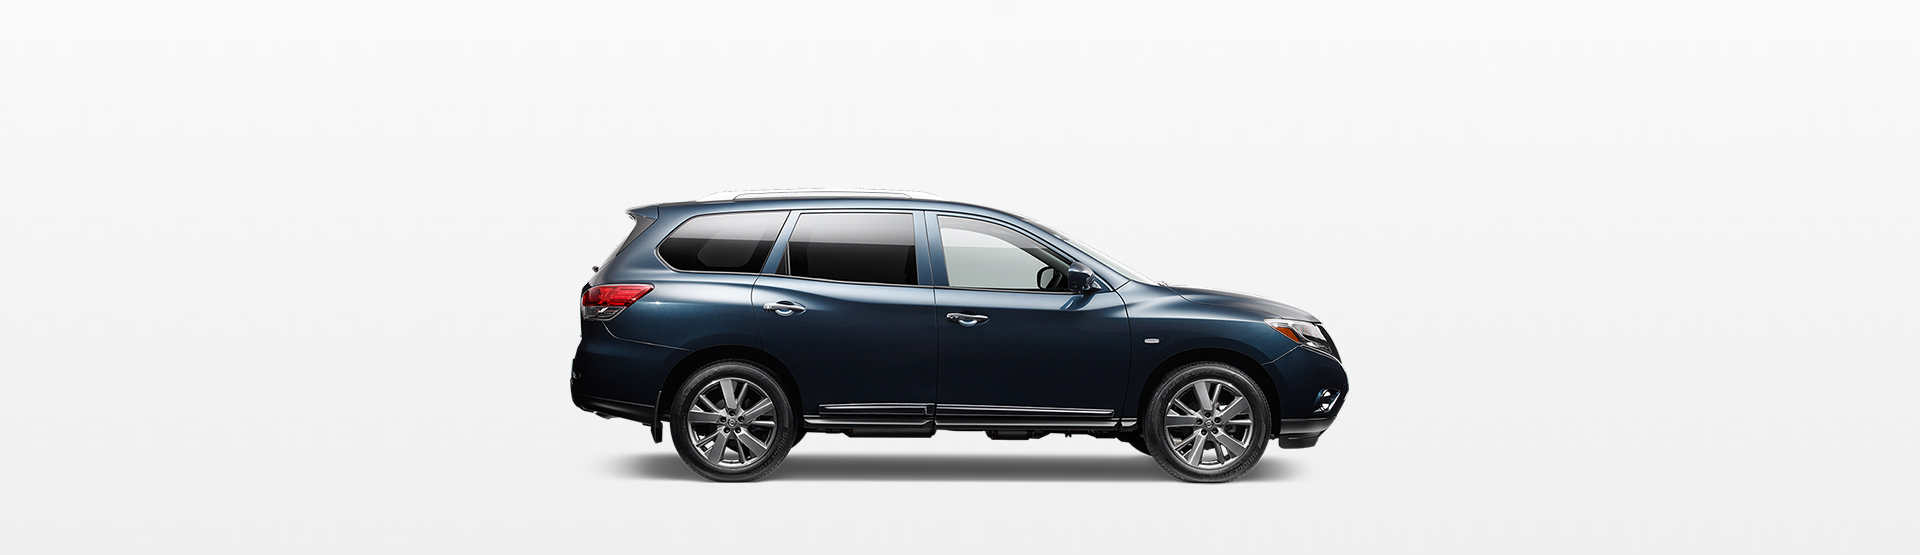 new nissan pathfinder for sale home new nissan pathfinder for sale. Black Bedroom Furniture Sets. Home Design Ideas